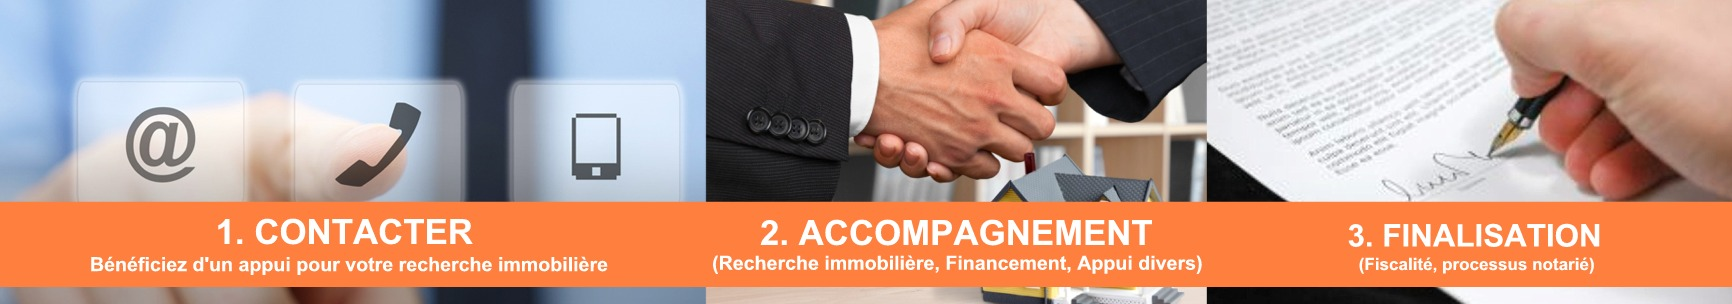 agence immobiliere accompagnement achat appartement maison geneve